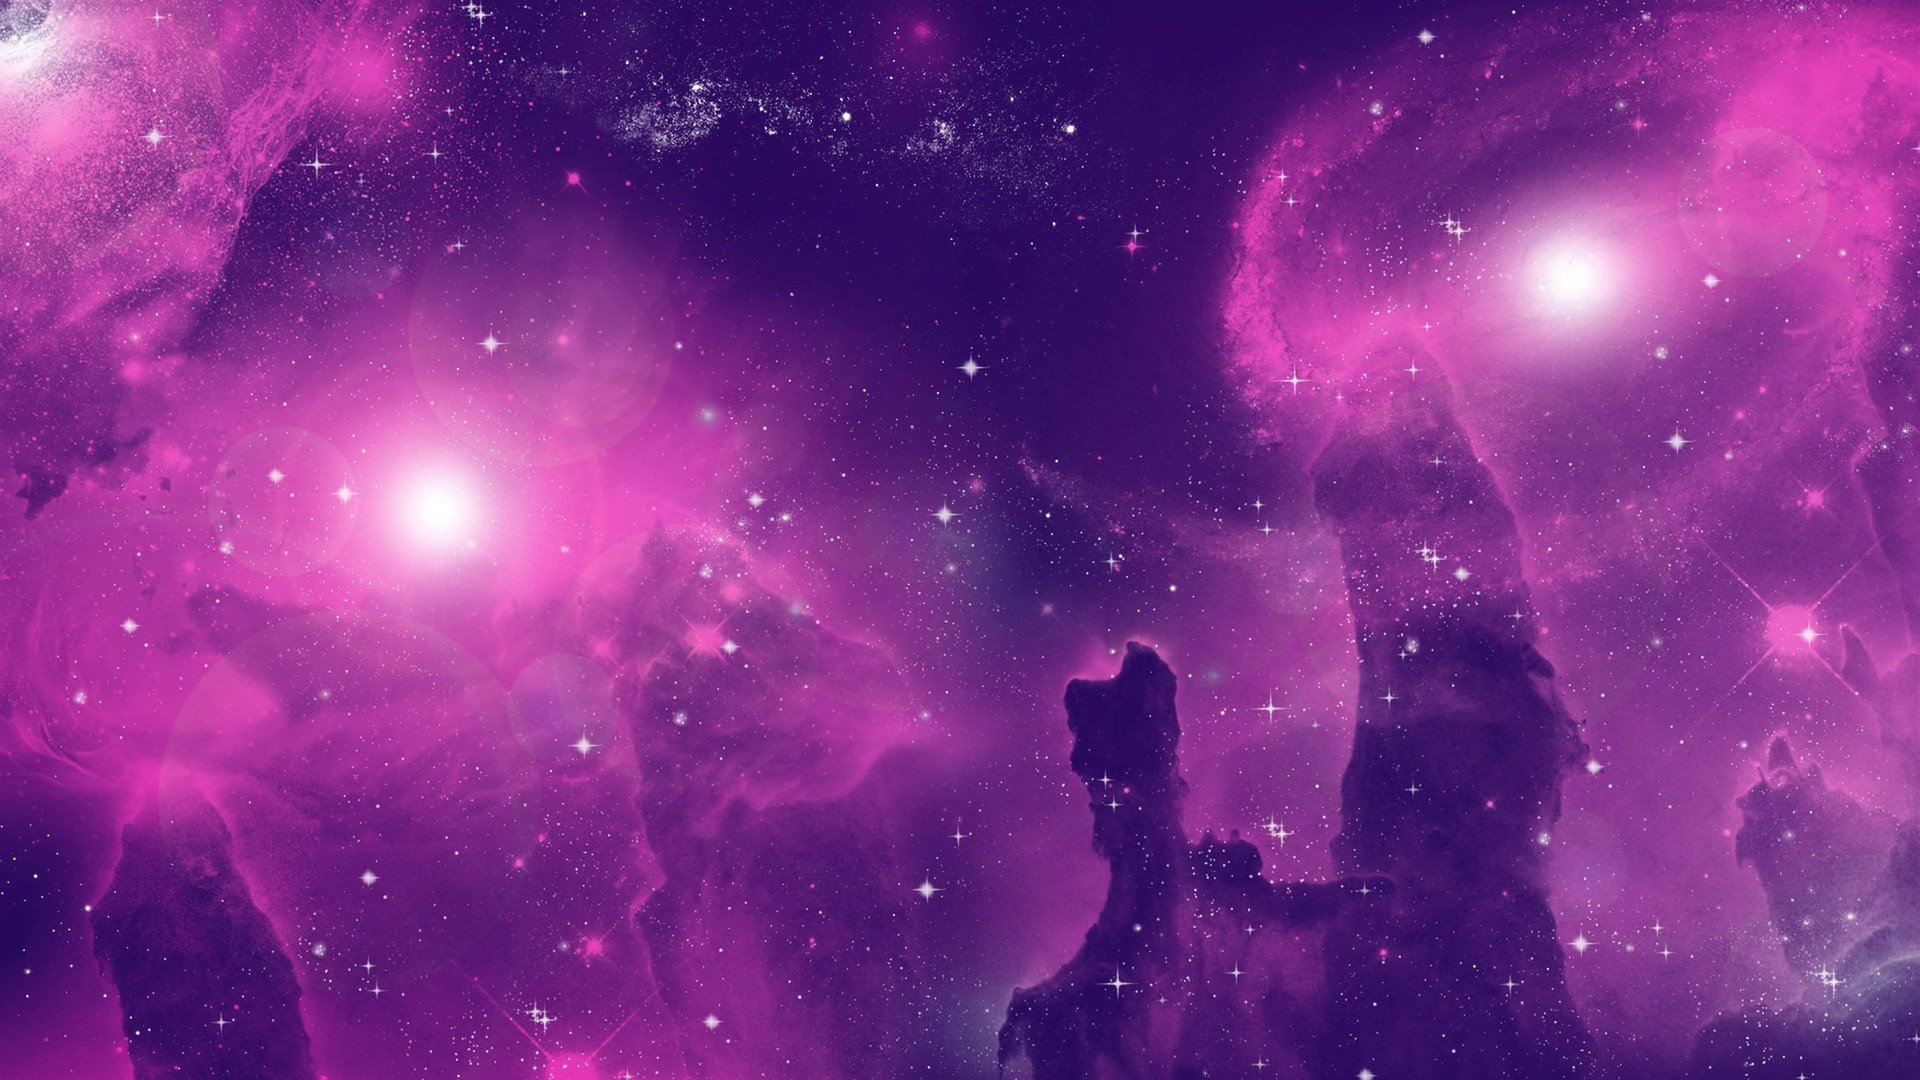 Pink Space Background 1920x1080